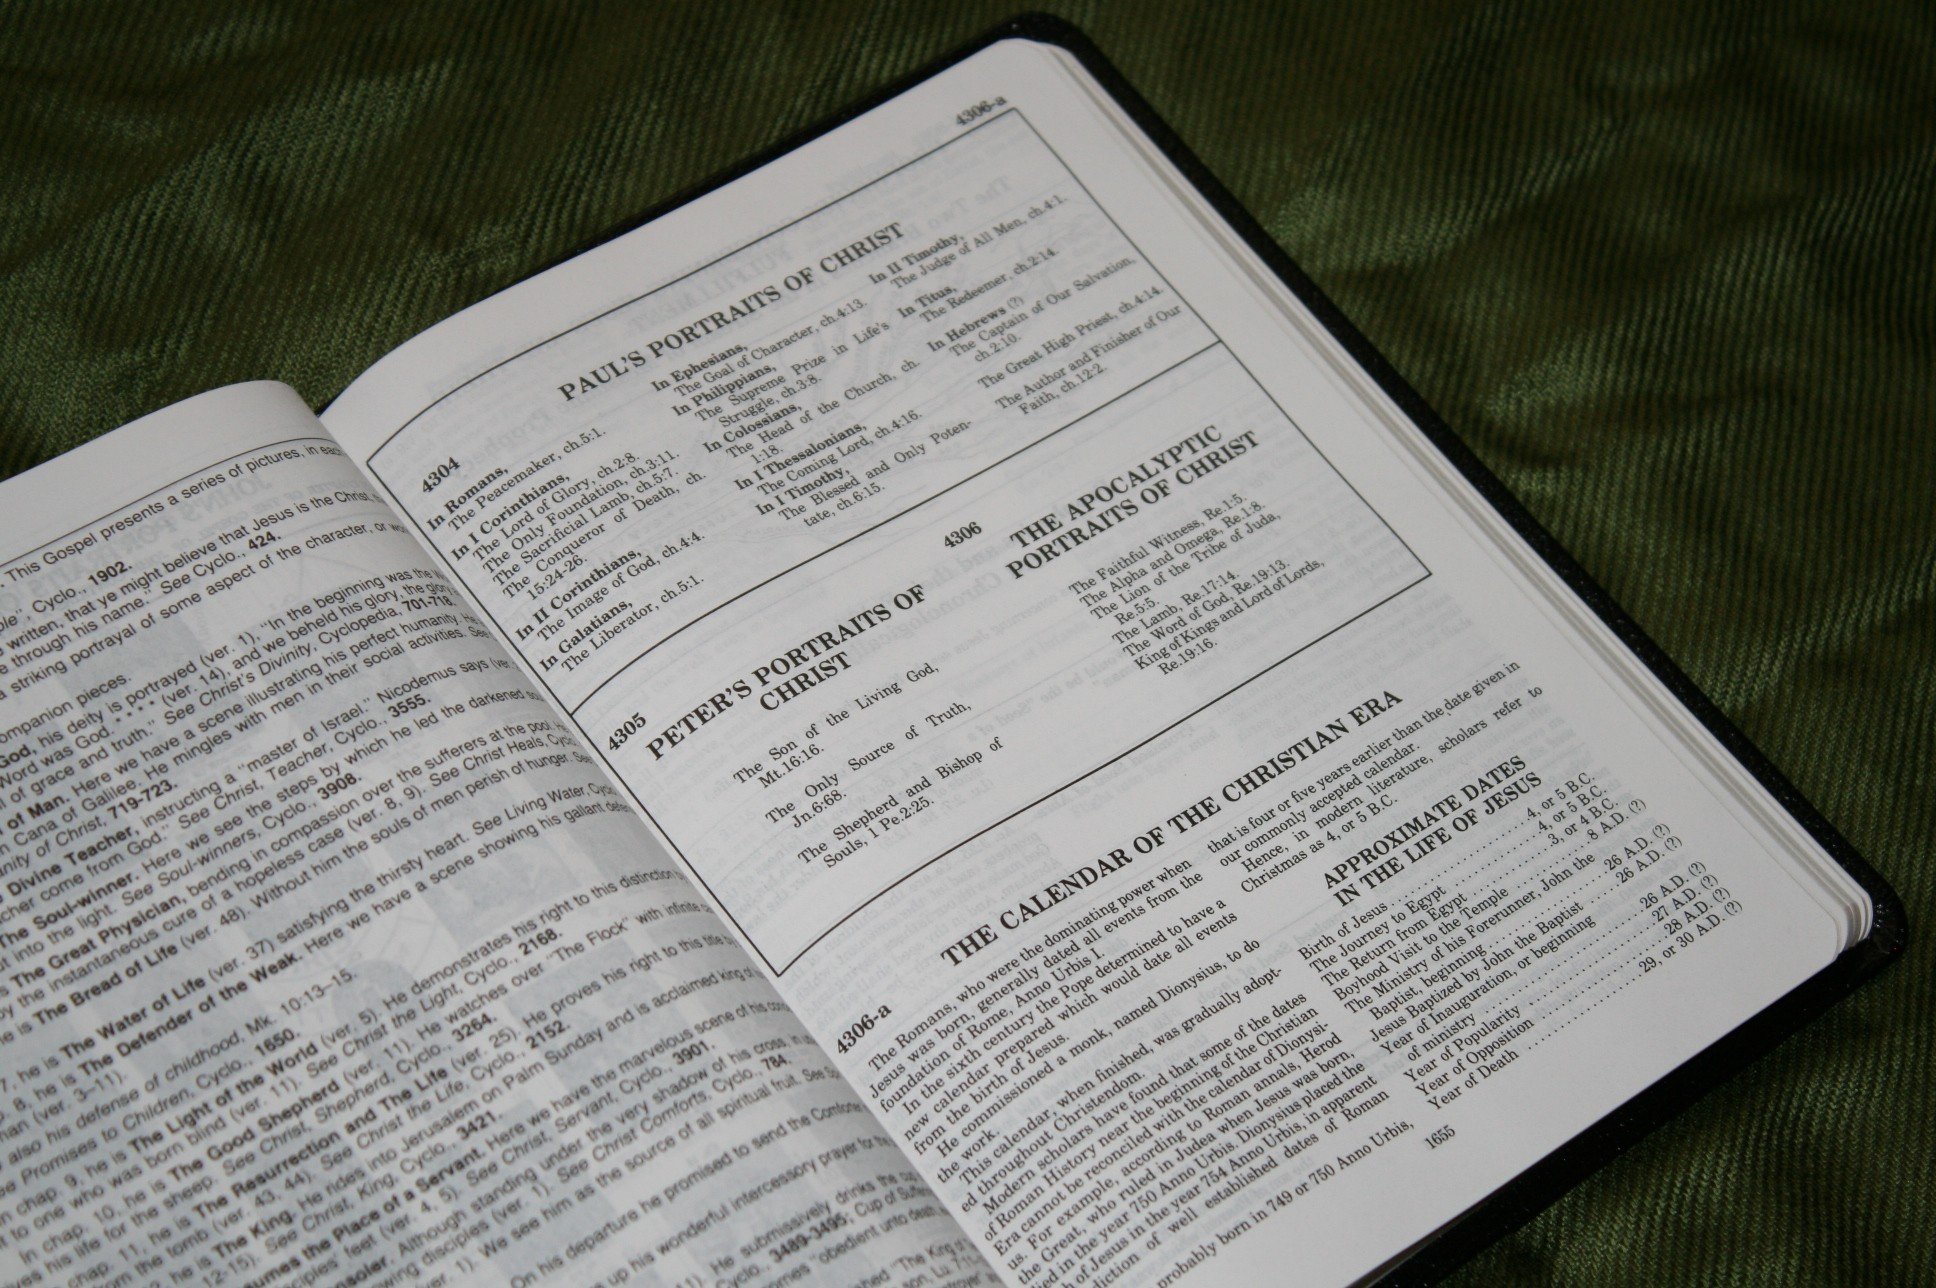 Handy Size Thompson Chain Reference Bible KJV (185)